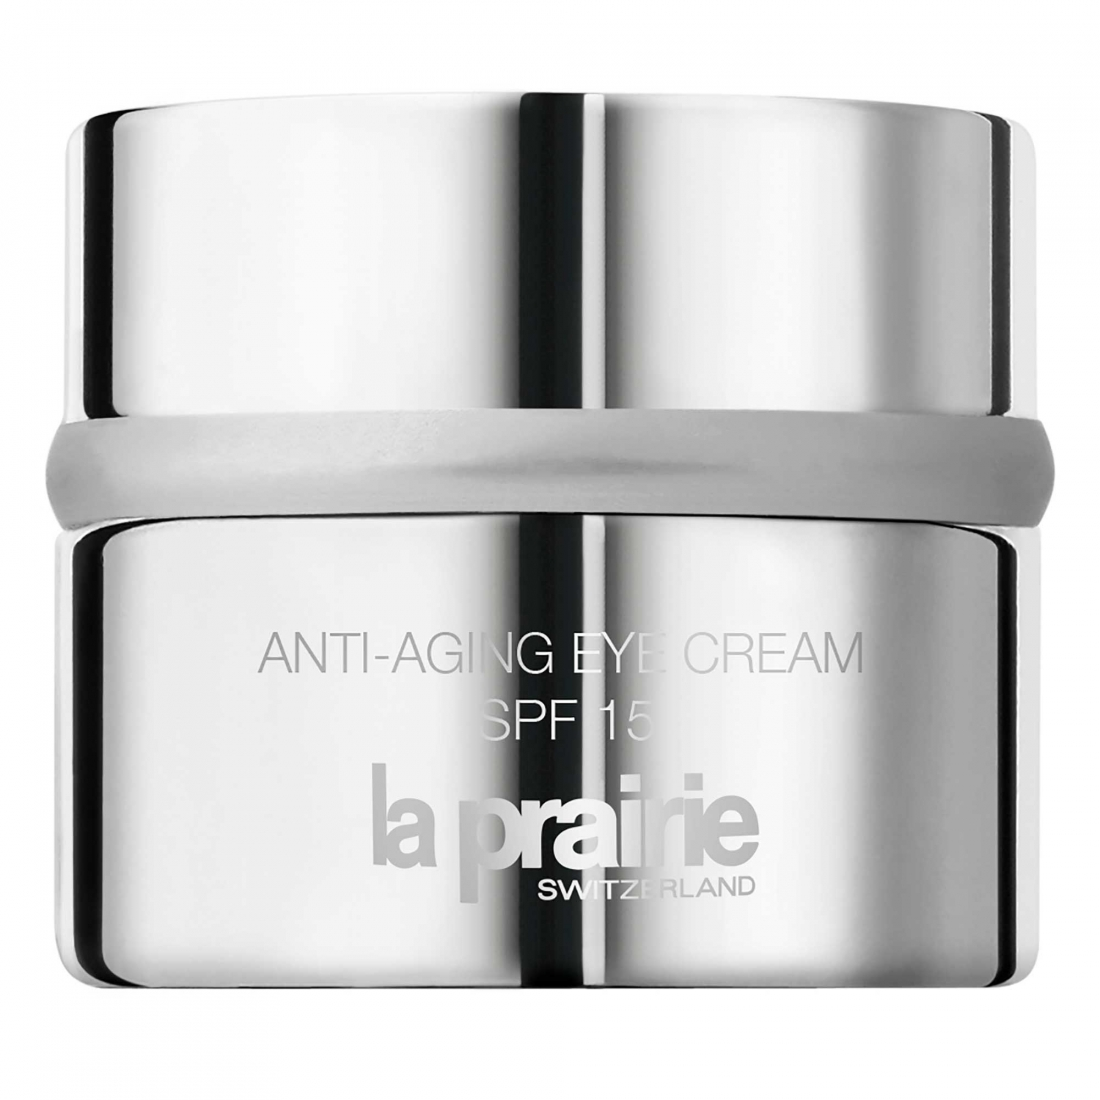 related product products/images/LaPrairie-AntiAgingEyeCreamSPF15